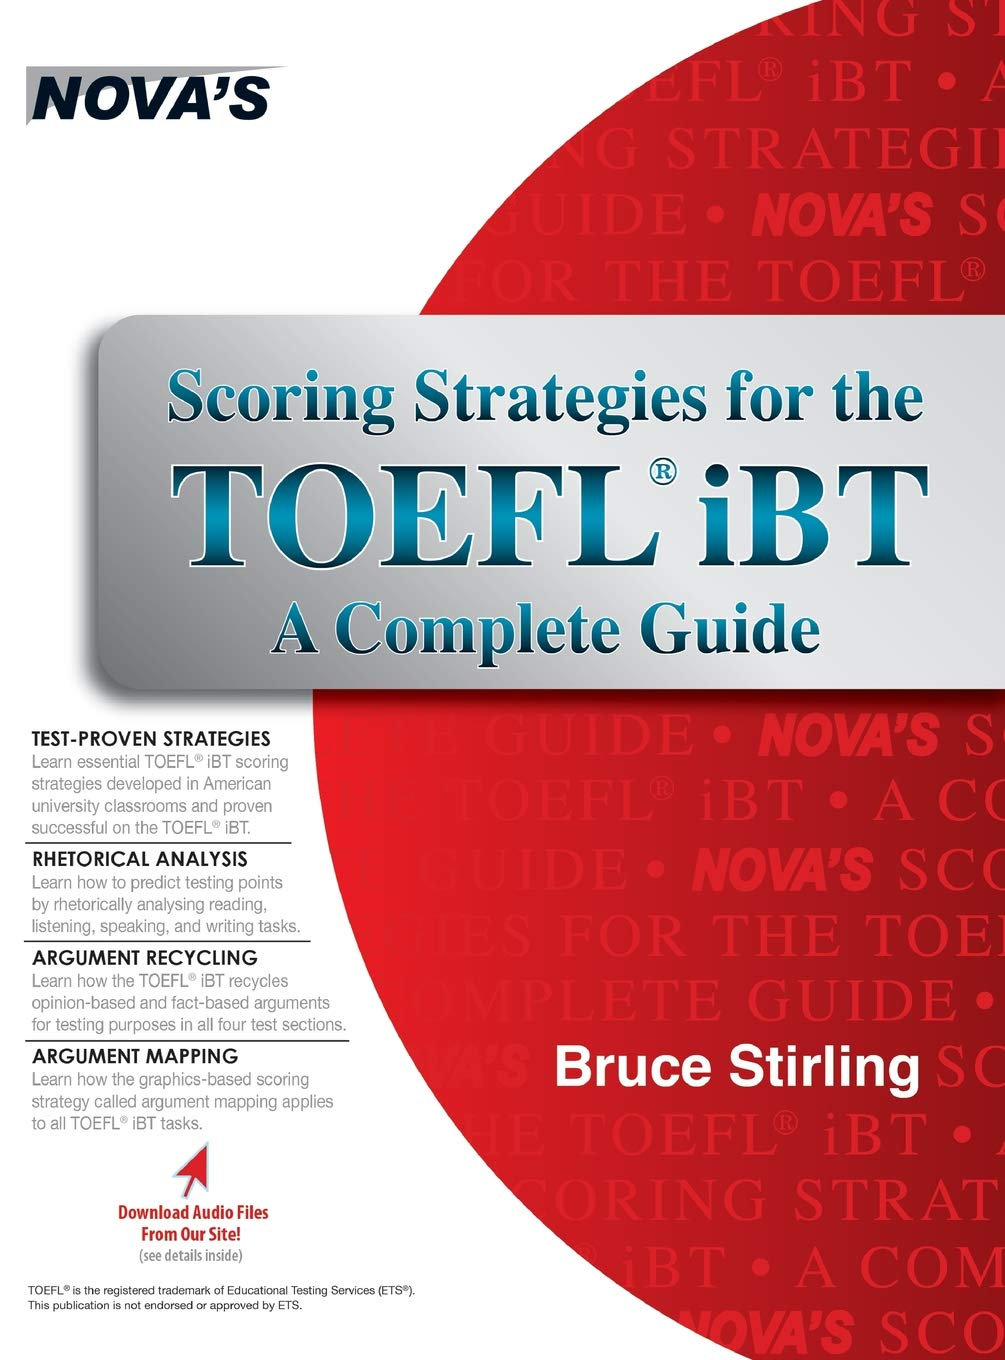 Scoring Strategies for the TOEFL iBT A Complete Guide by Nova Press